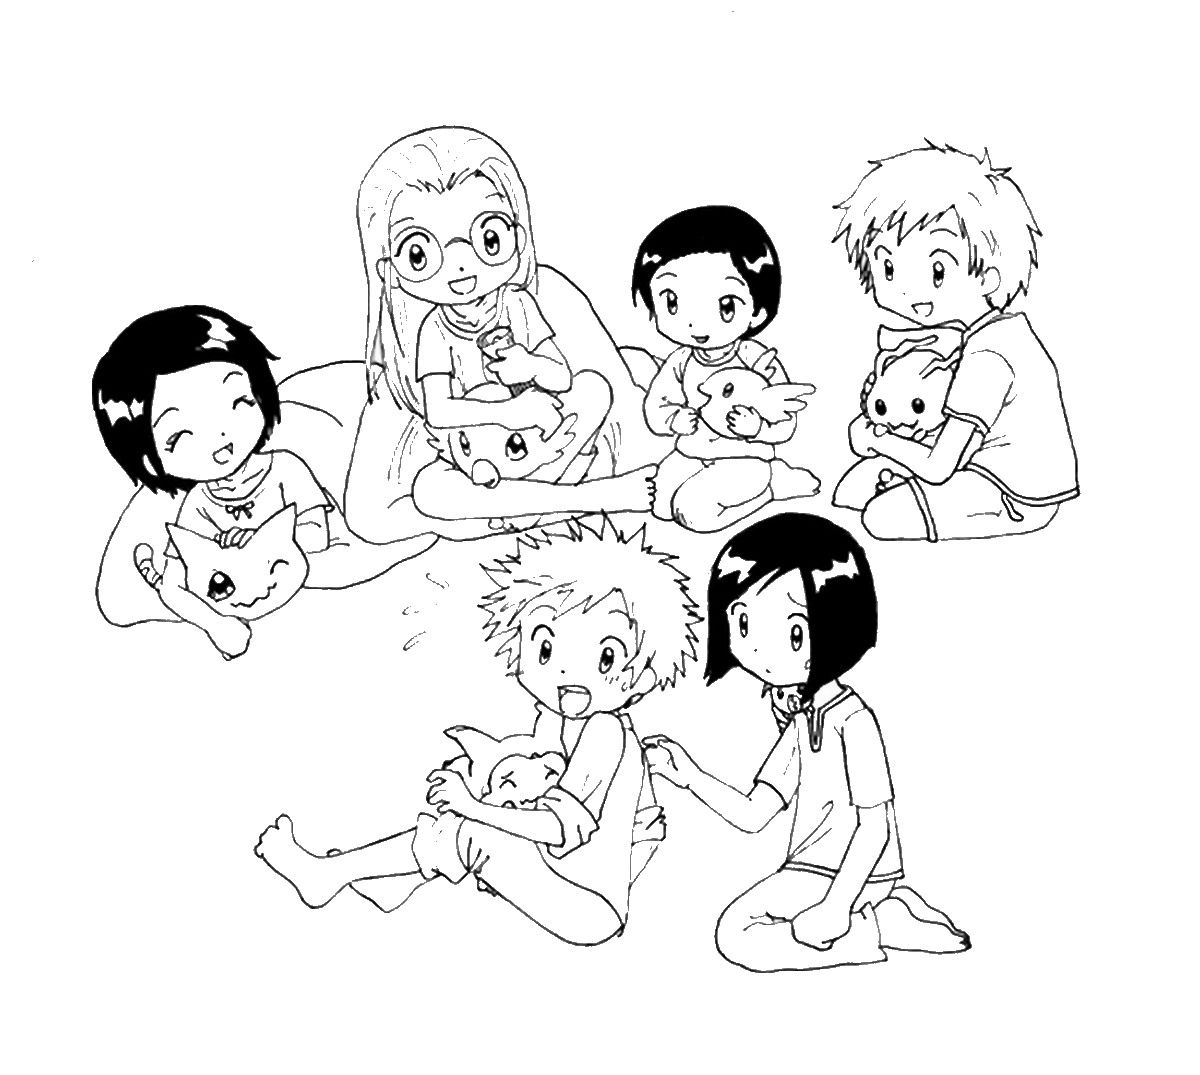 pajama_10.jpg (1200×1075) | Colouring Pages | Pinterest